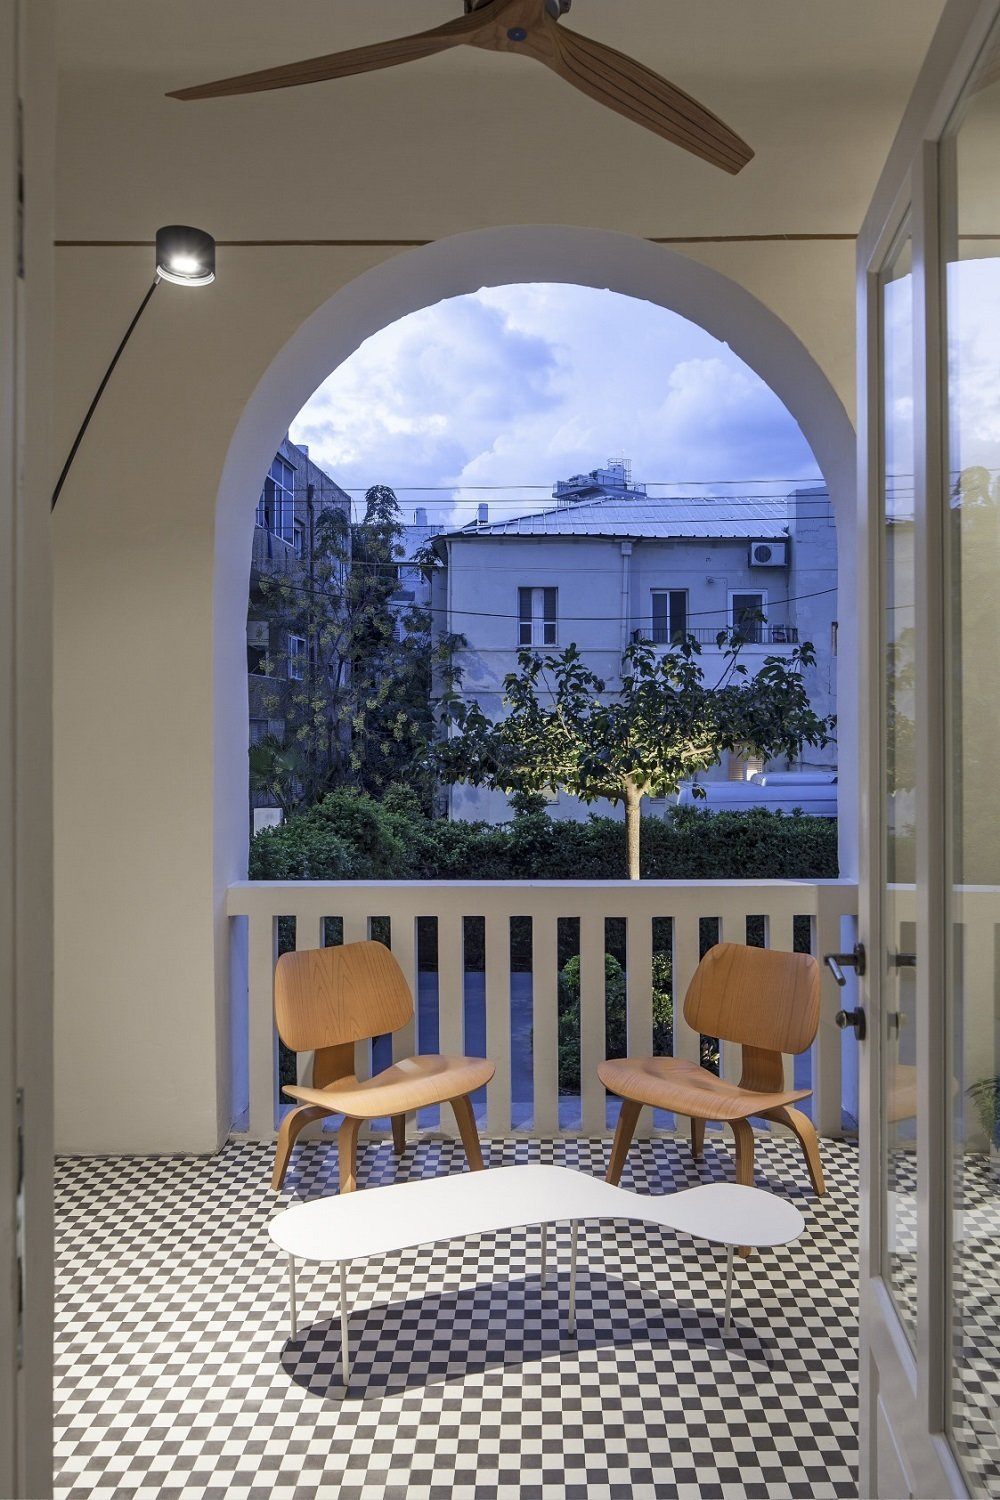 The narrow balcony helps shade the residents while funneling the cool ocean breeze from the west.  Minimal Reboot by Patrick Sisson